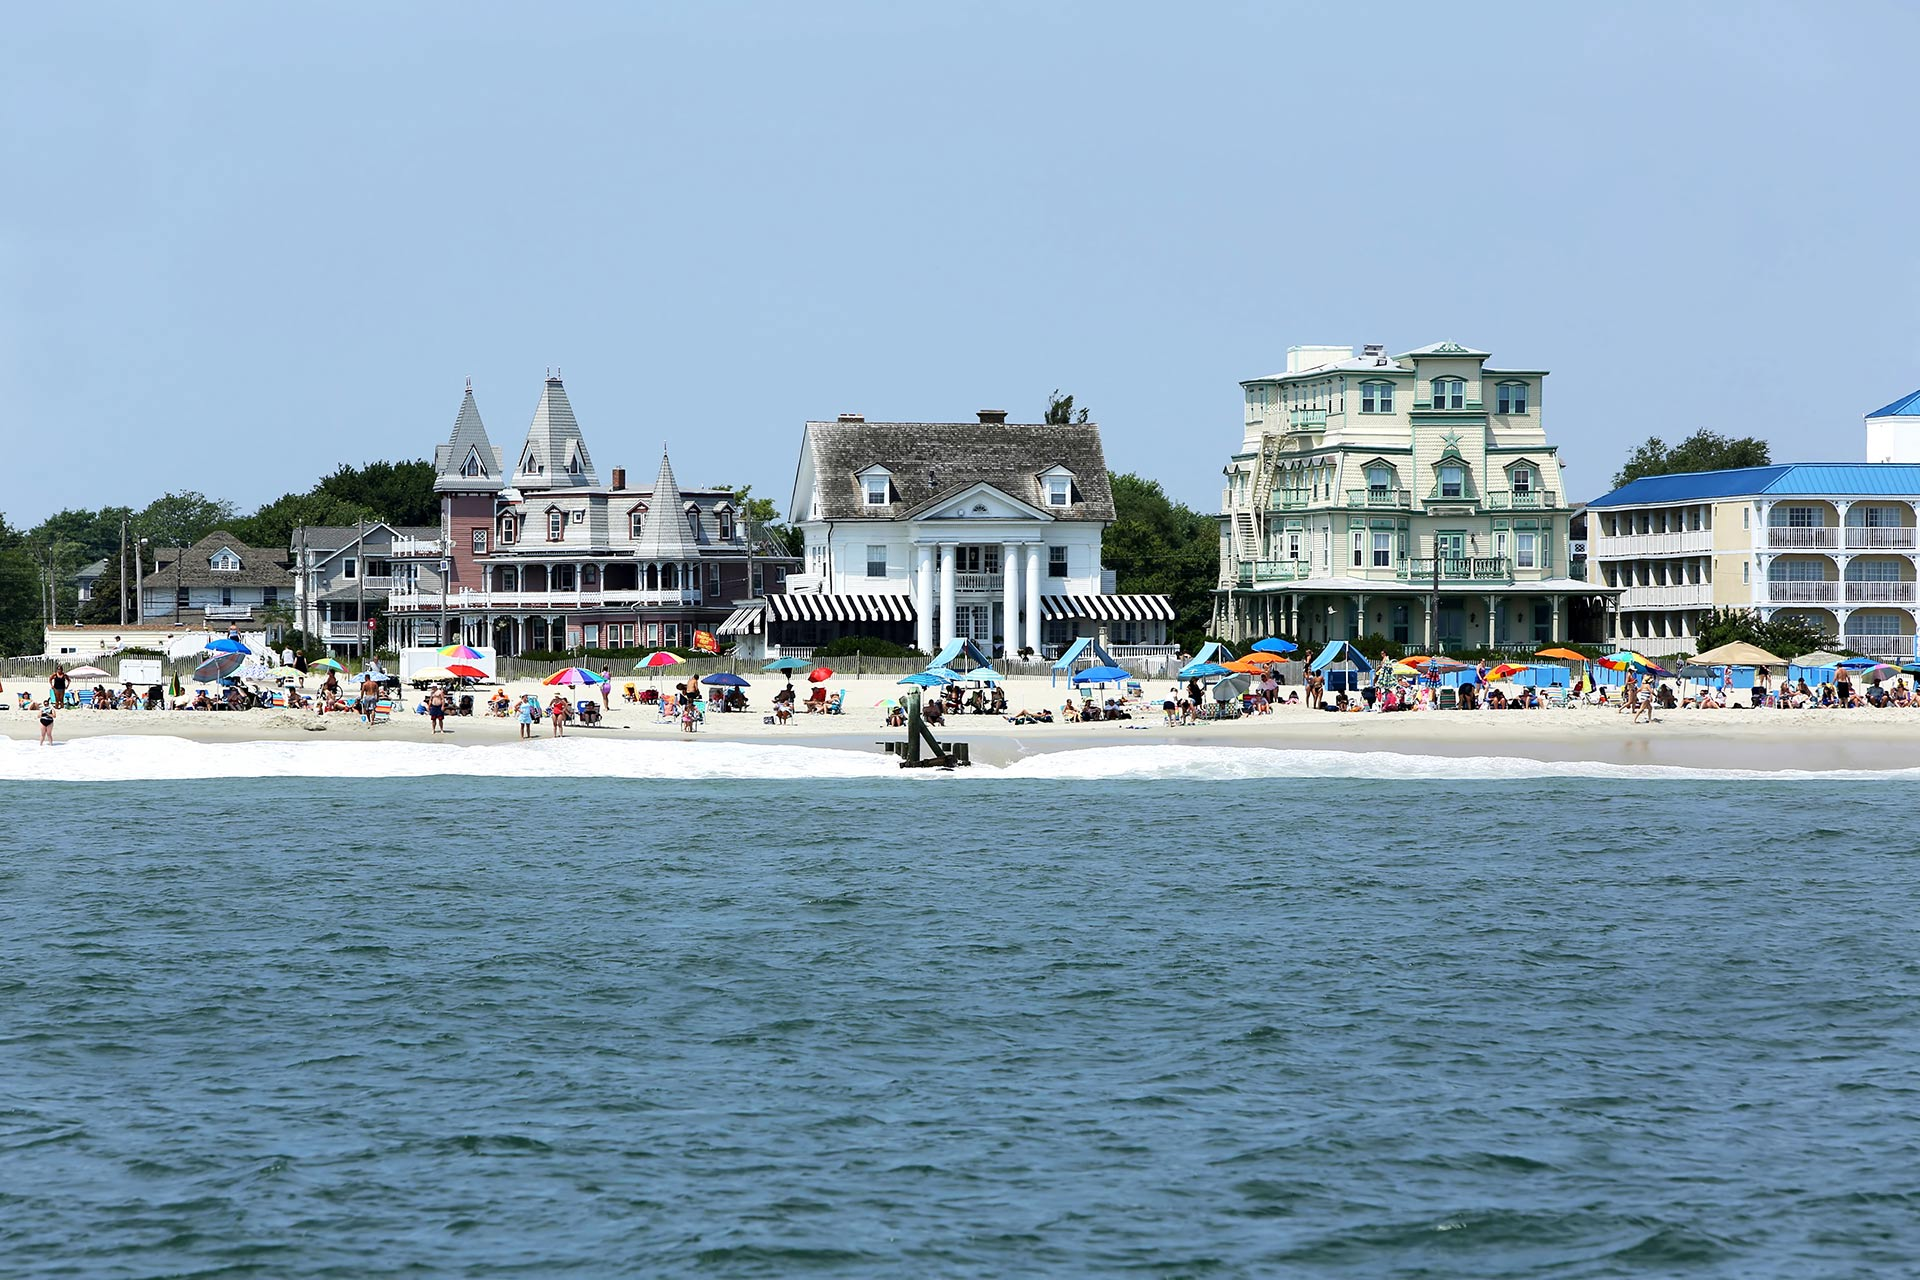 Cape May, New Jersey; Photo Courtesy of Rachael Grazias/Shutterstock.com